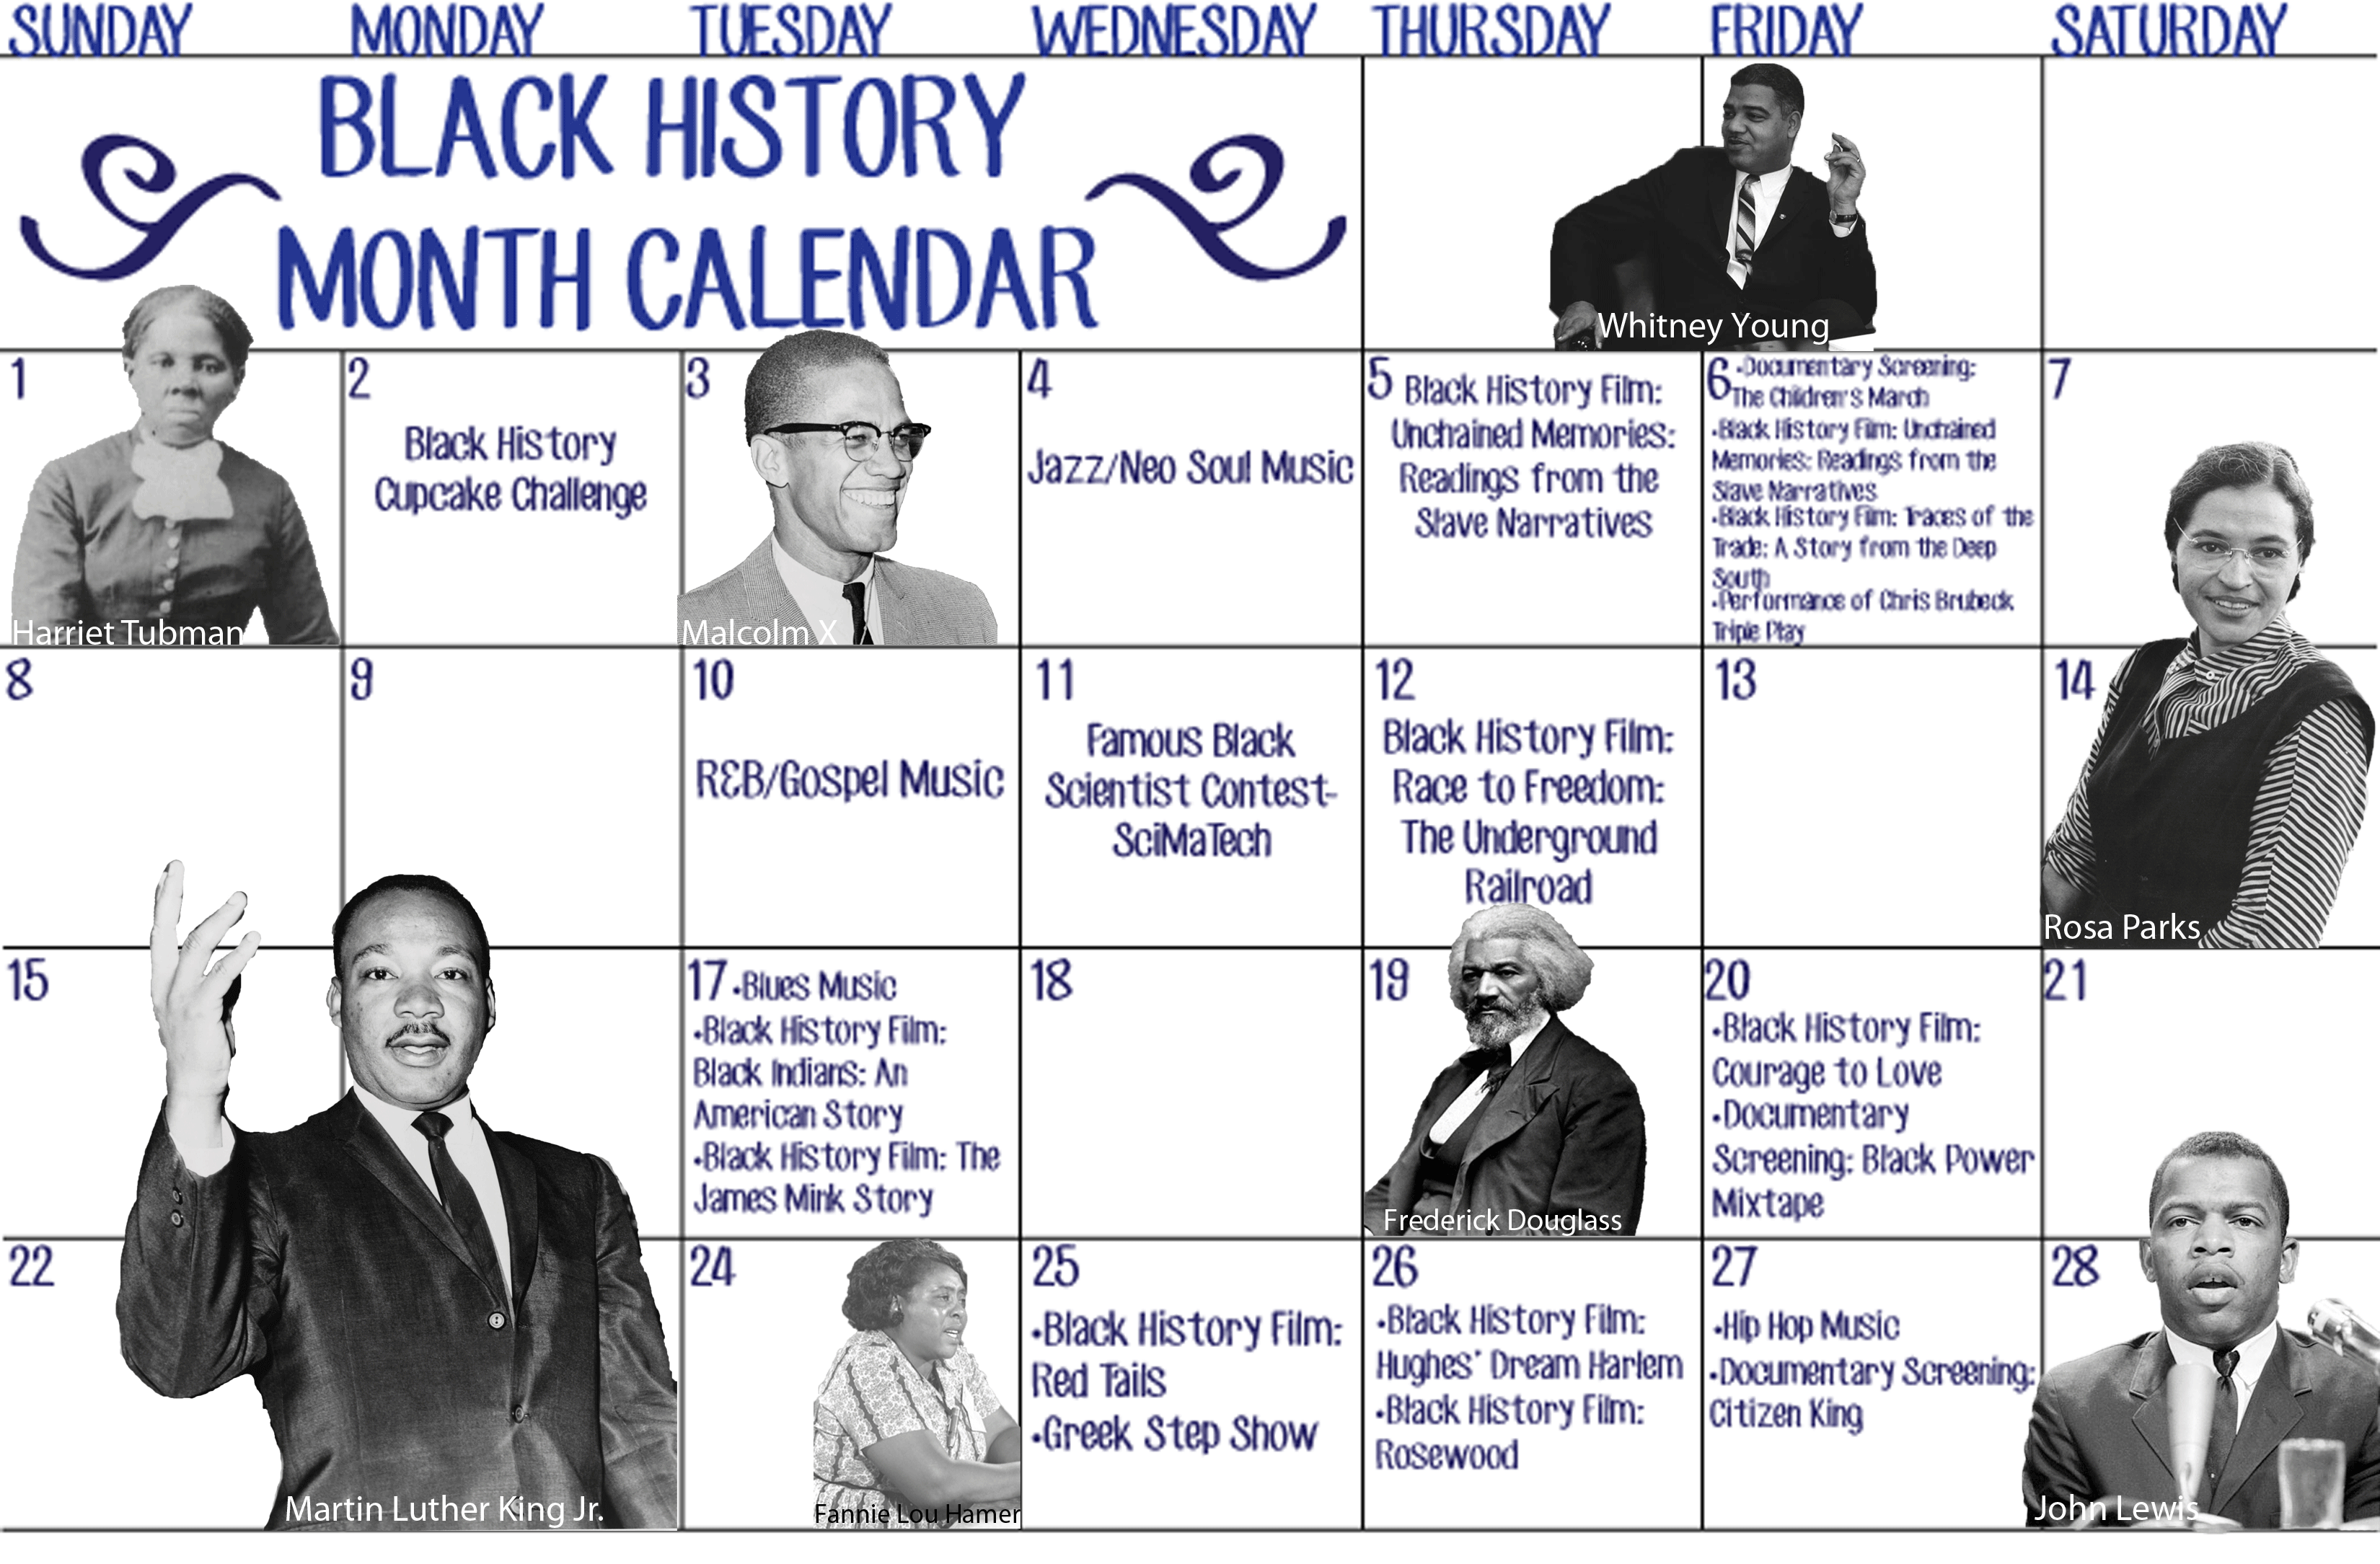 Black History Month Calendar The Wilson Beacon